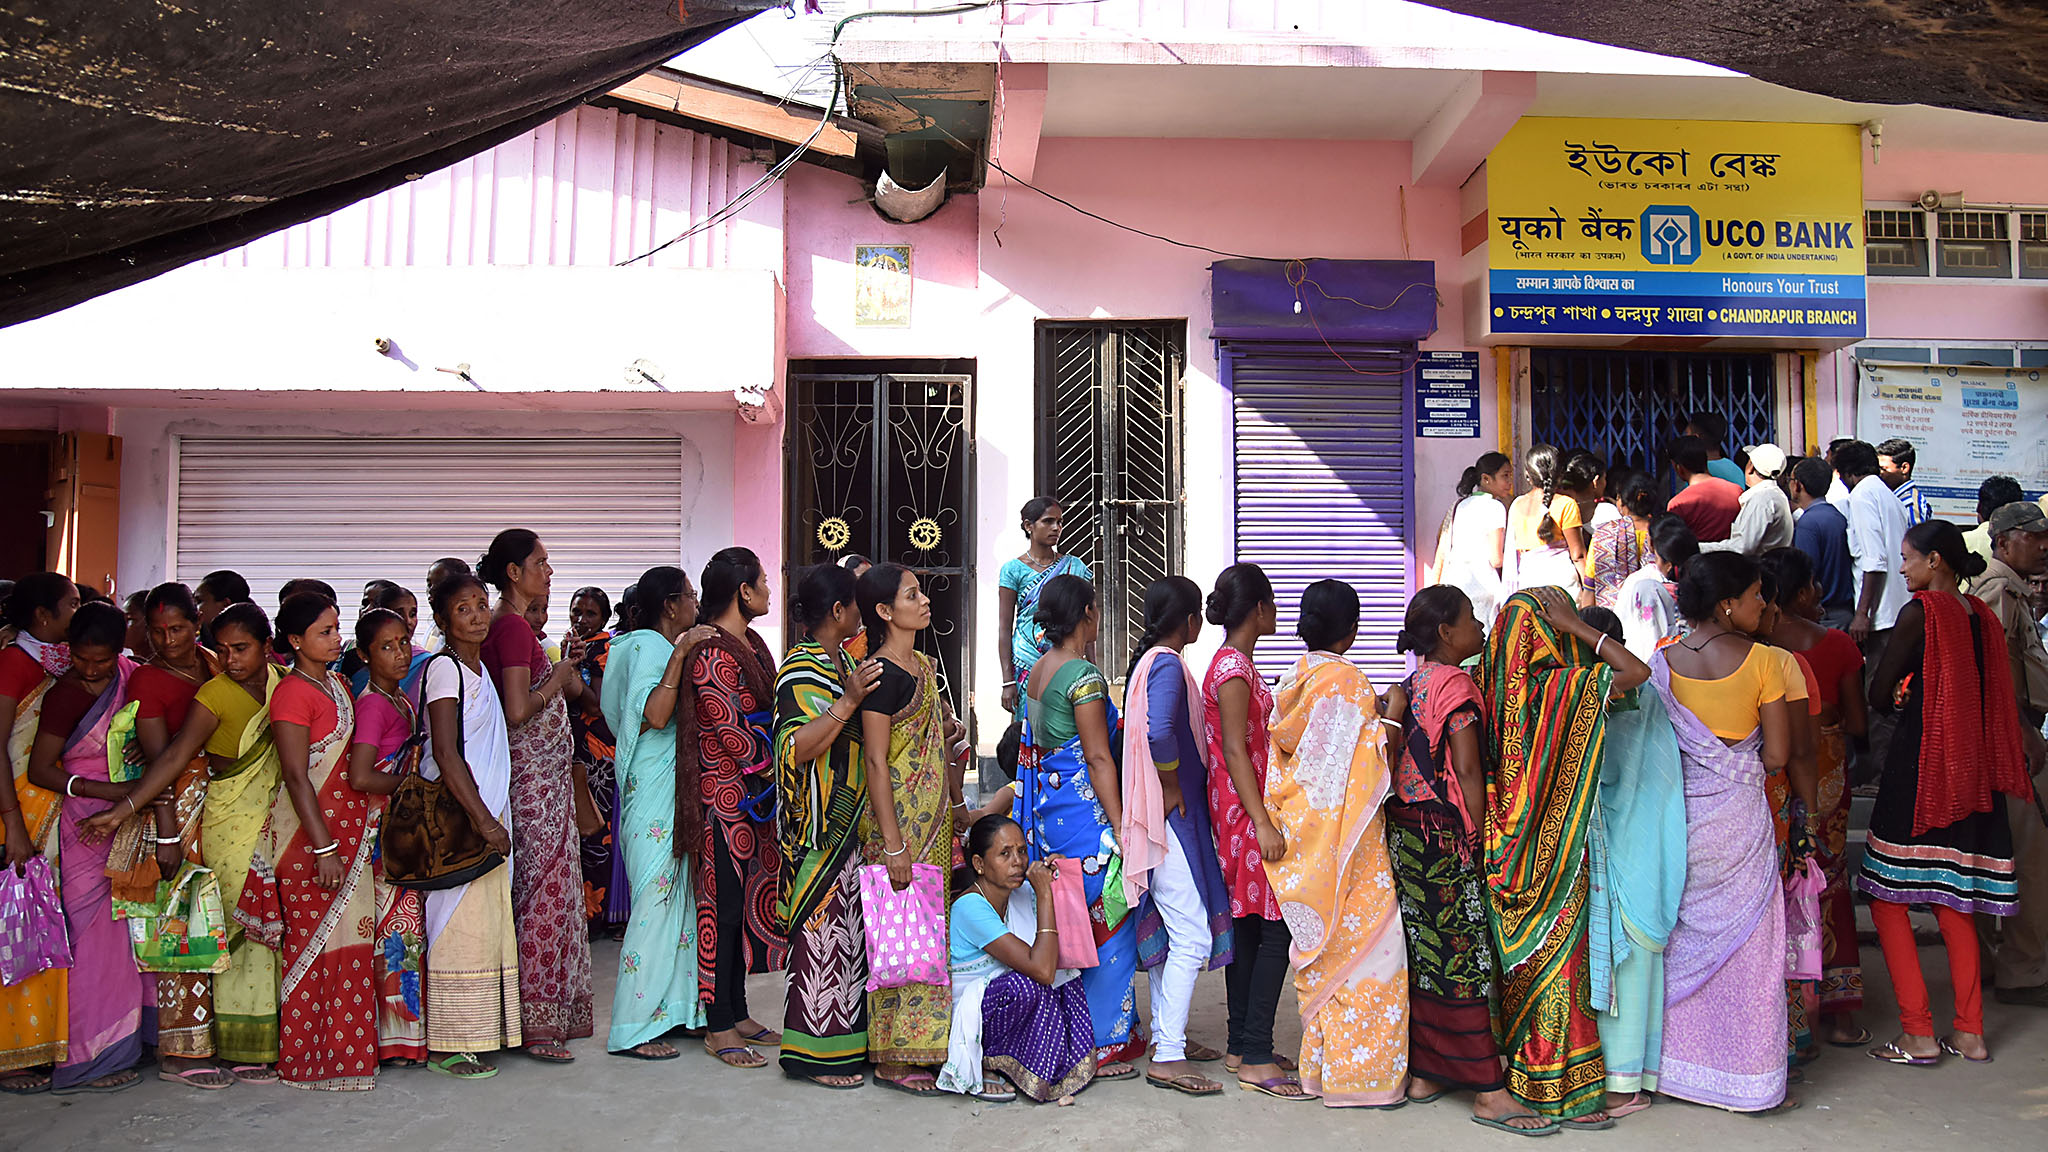 Indian villagers wait in a queue outside a bank to deposit and exchange 500 and 1000 rupee notes in Chandrapur Village, some 30 kms from Guwahati on November 15, 2016.  / AFP / Biju BORO        (Photo credit should read BIJU BORO/AFP/Getty Images) *** BEST